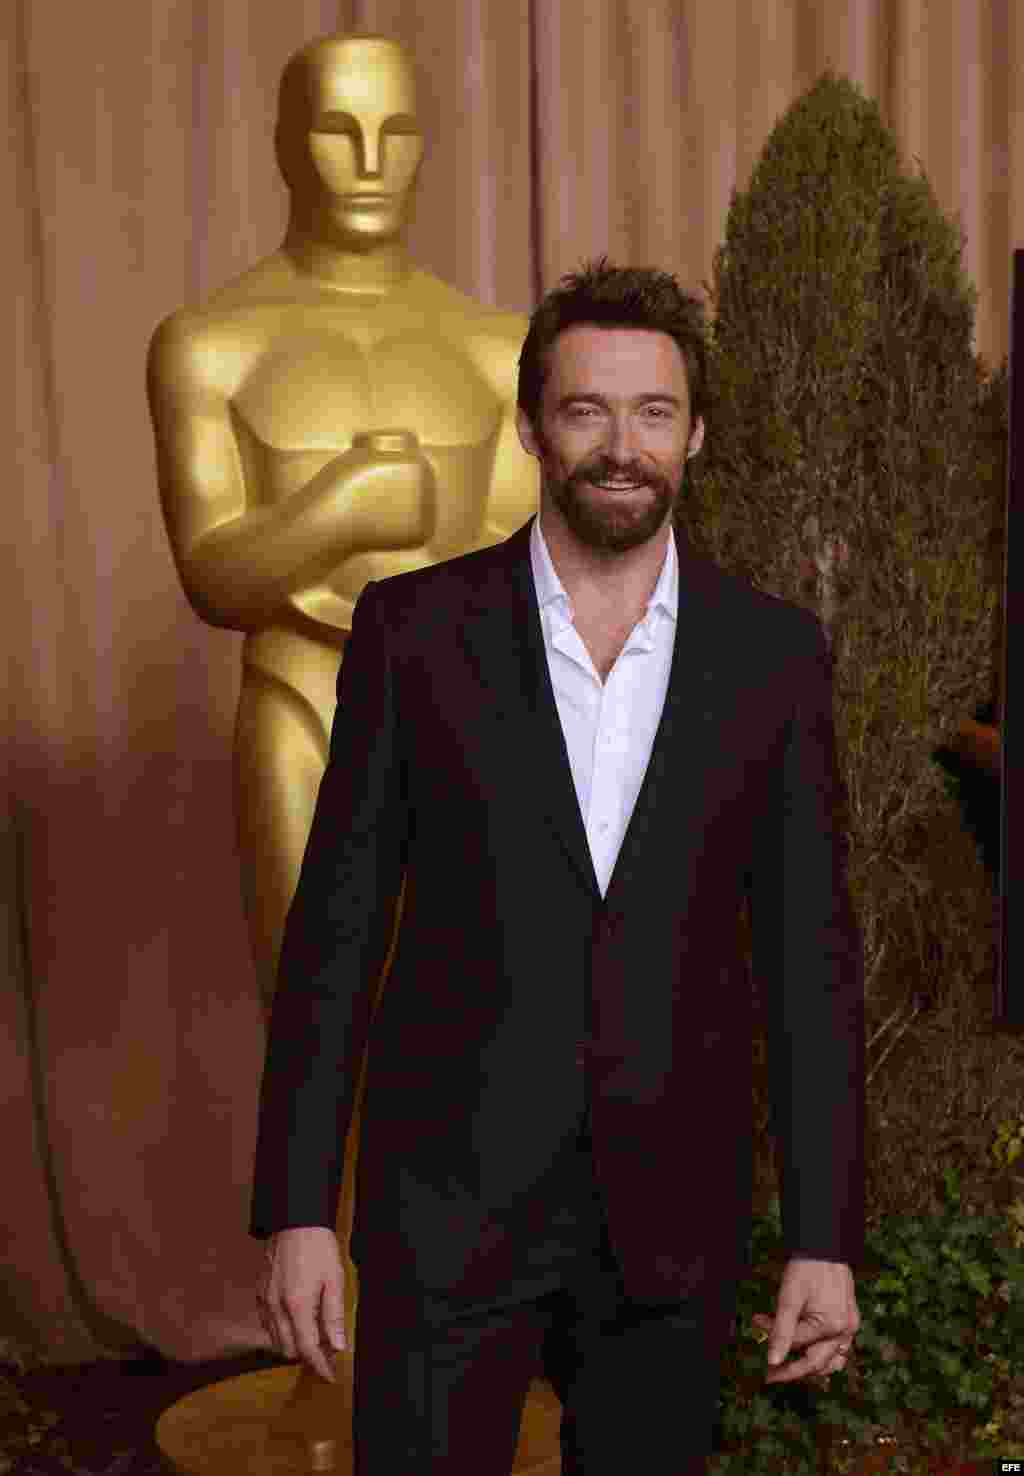 El actor australiano Hugh Jackman. Nominado al Oscar a Mejor Actor por Los Miserables.